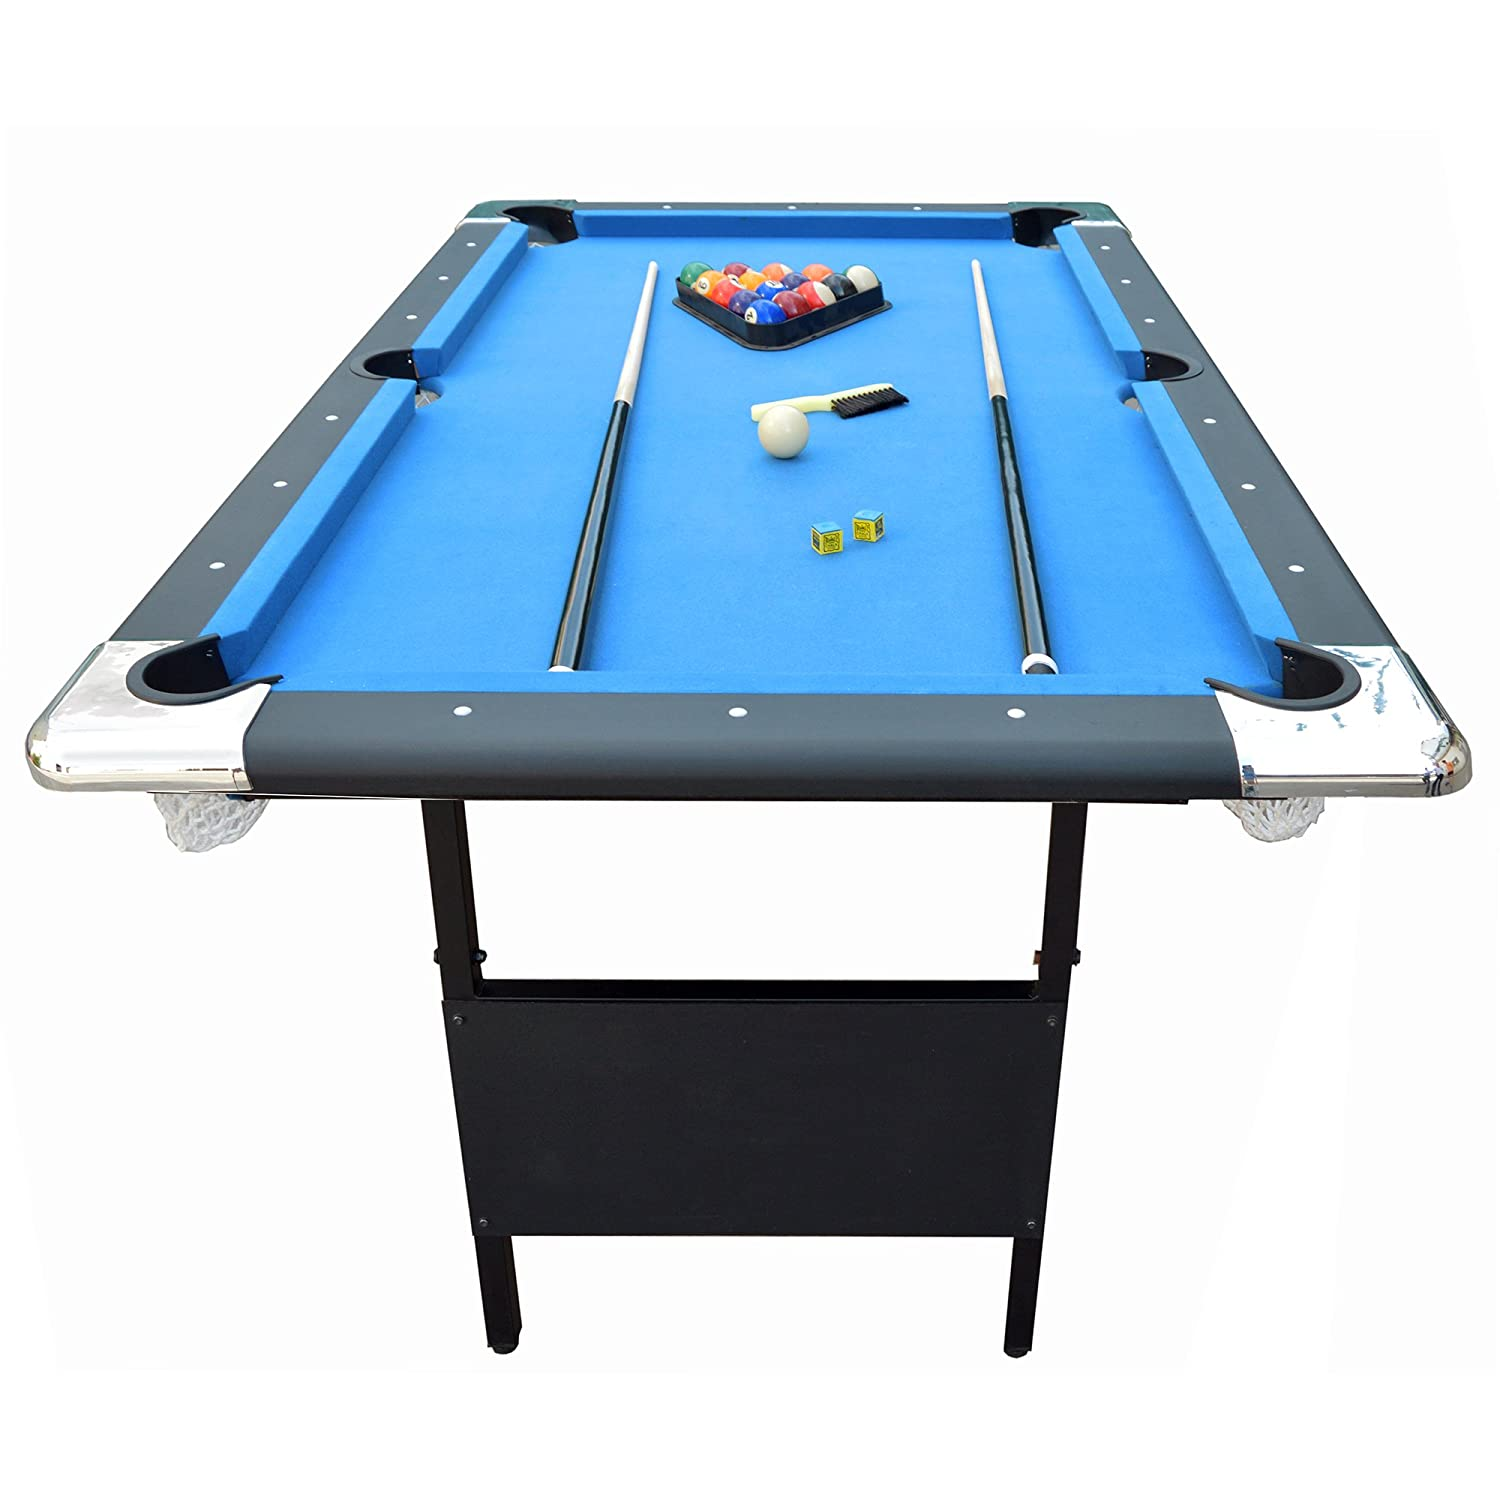 Hathaway Fairmont Foot Portable Pool Table Review - Pool table price amazon